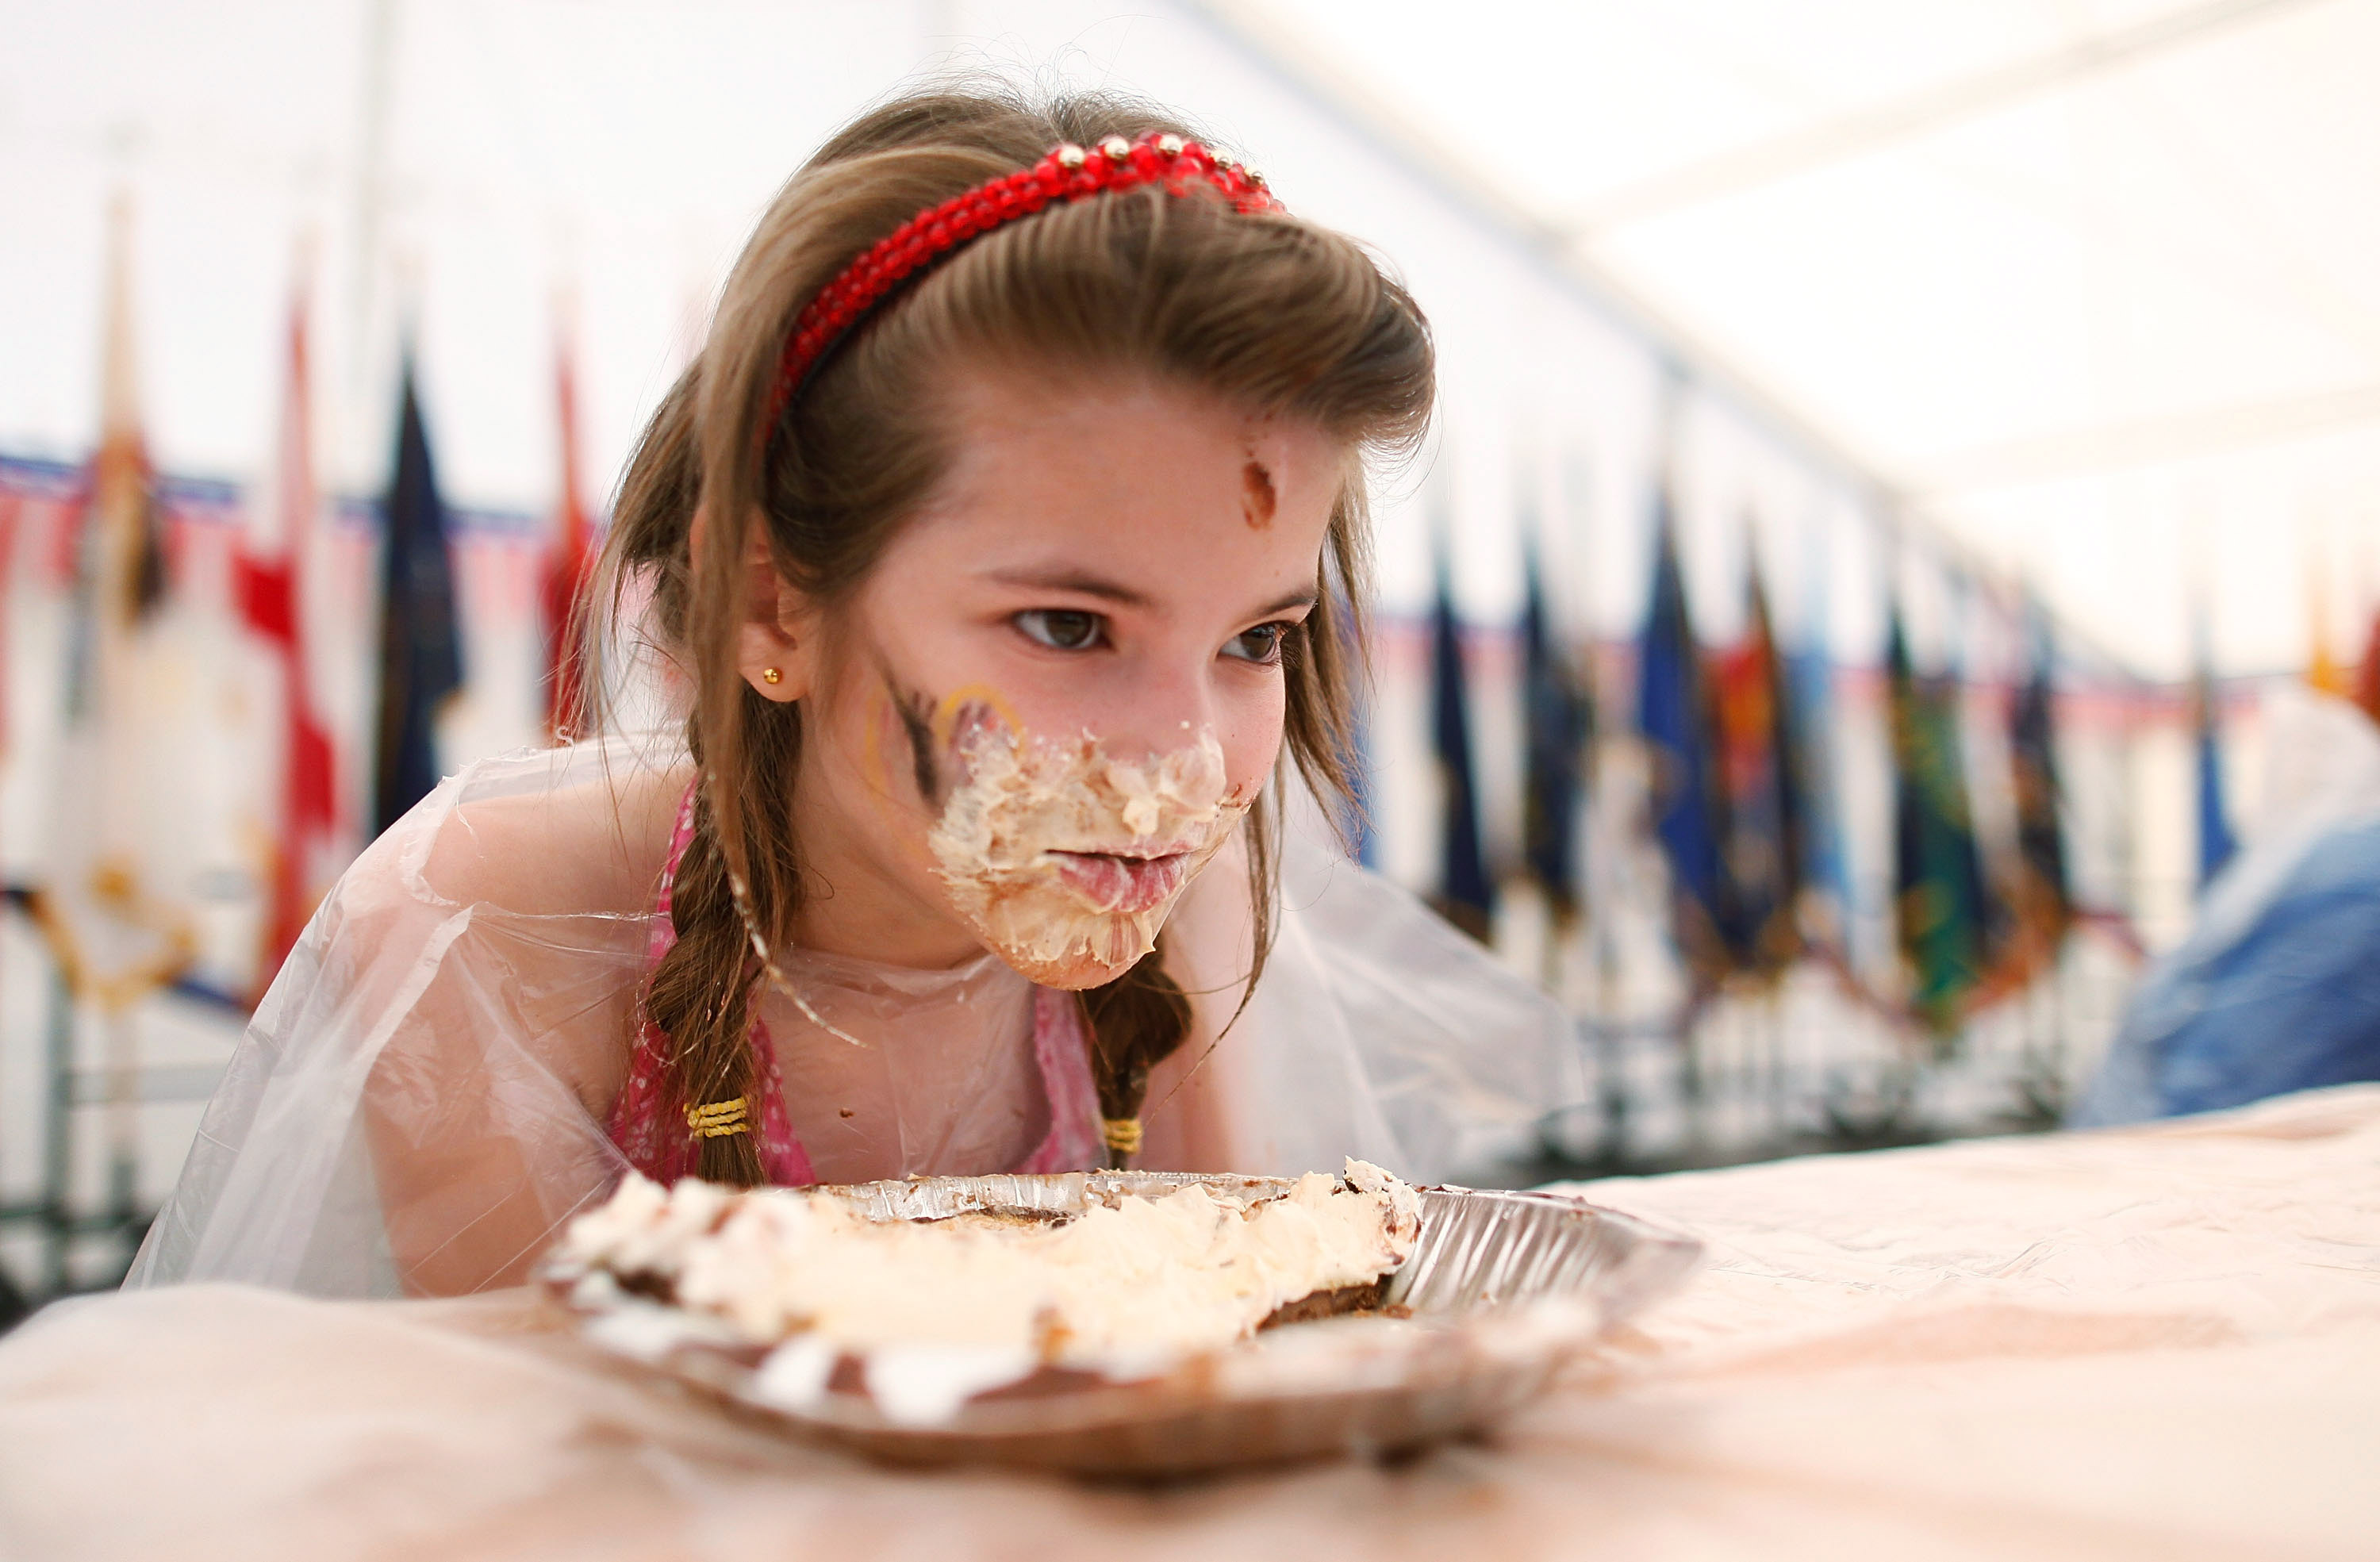 Michelle Obamas Bake Sale Ban Is Outrageous Cruel And Completely Fake